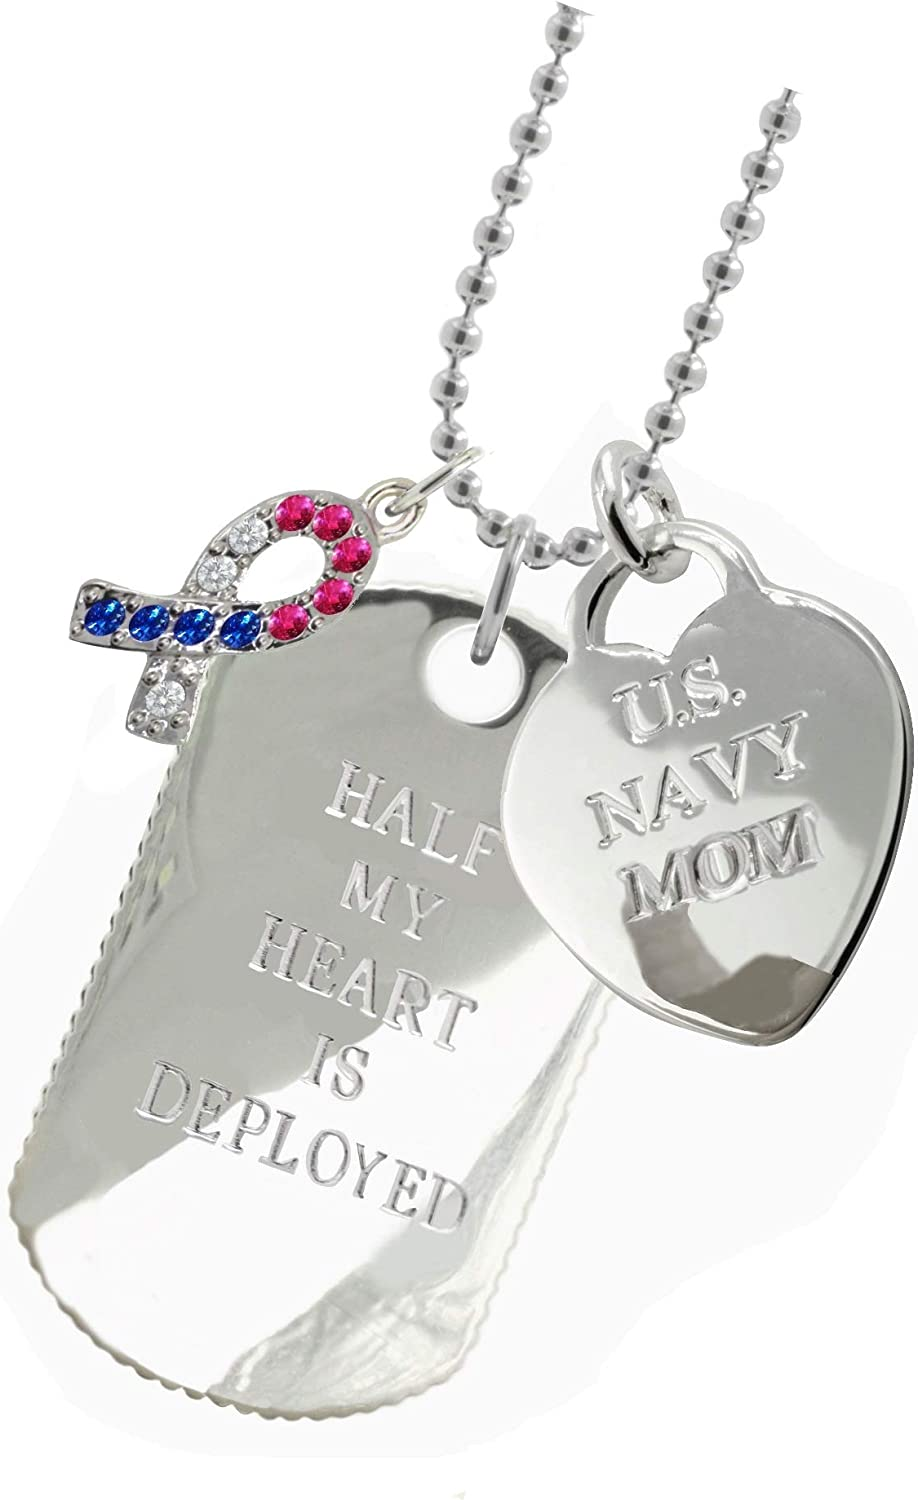 Plated Navy Mom Dog Tag CR New York 925 /& Co